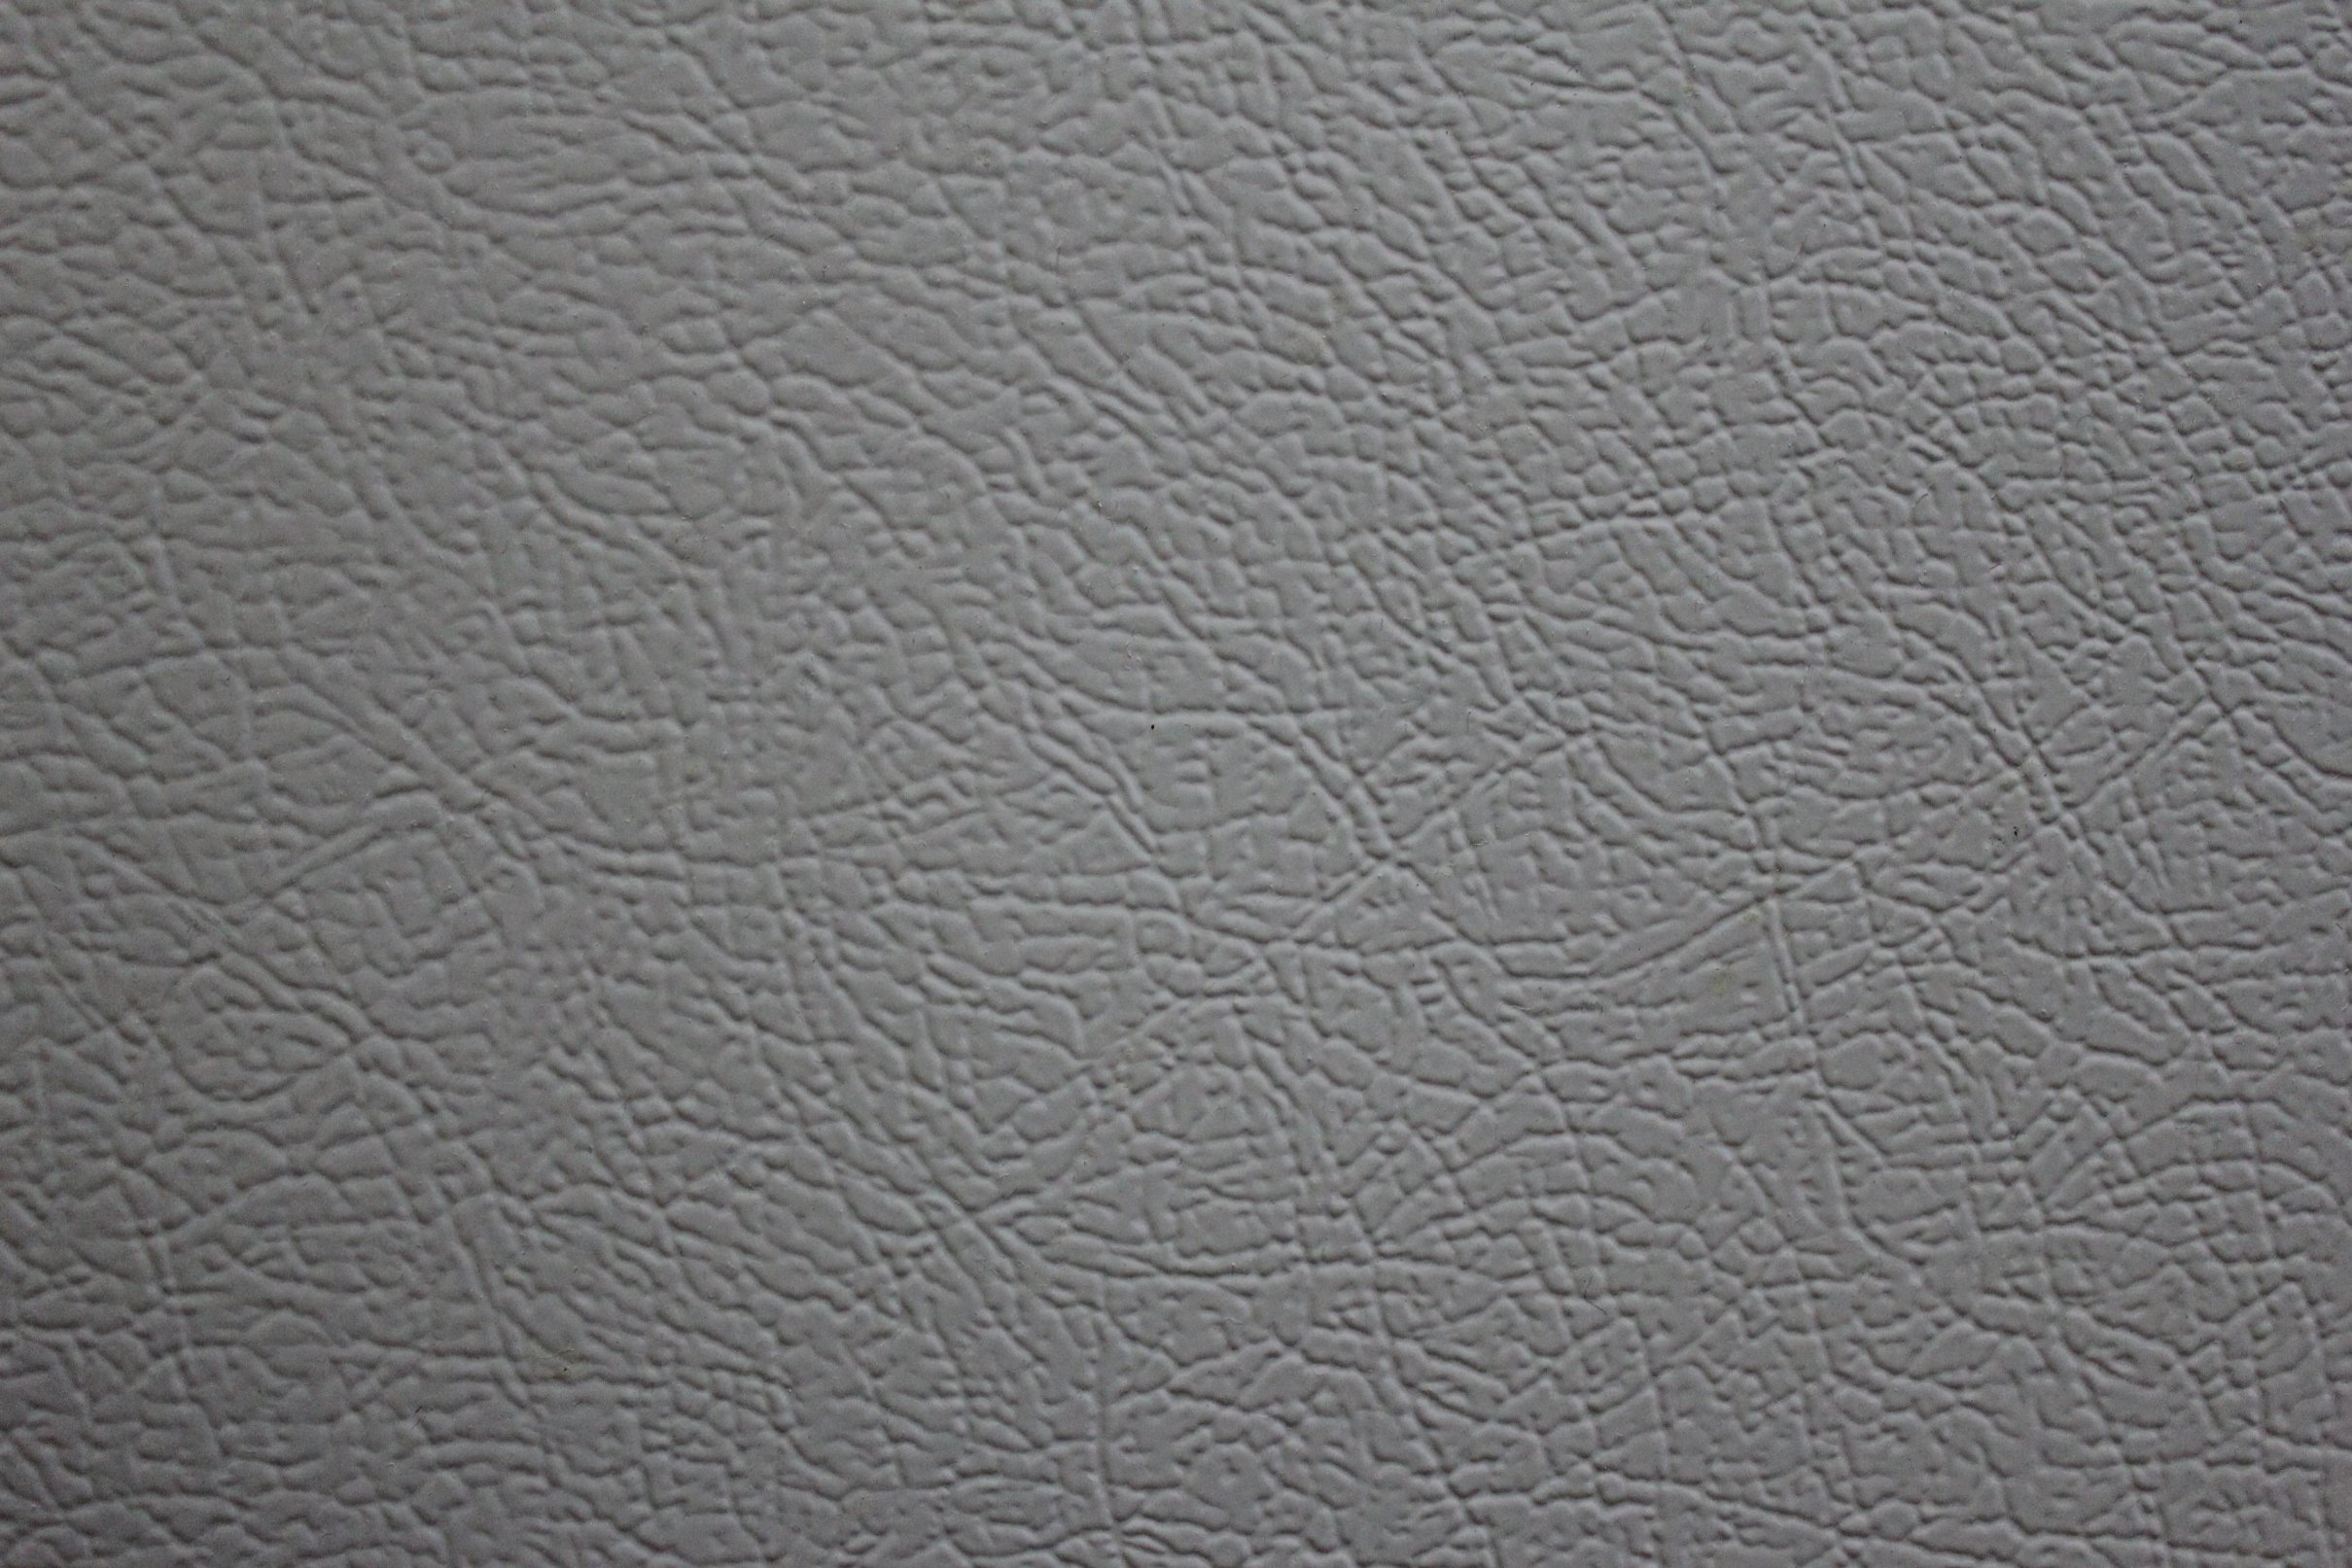 Fridge Door Texture Free Public Domain Stock Photo